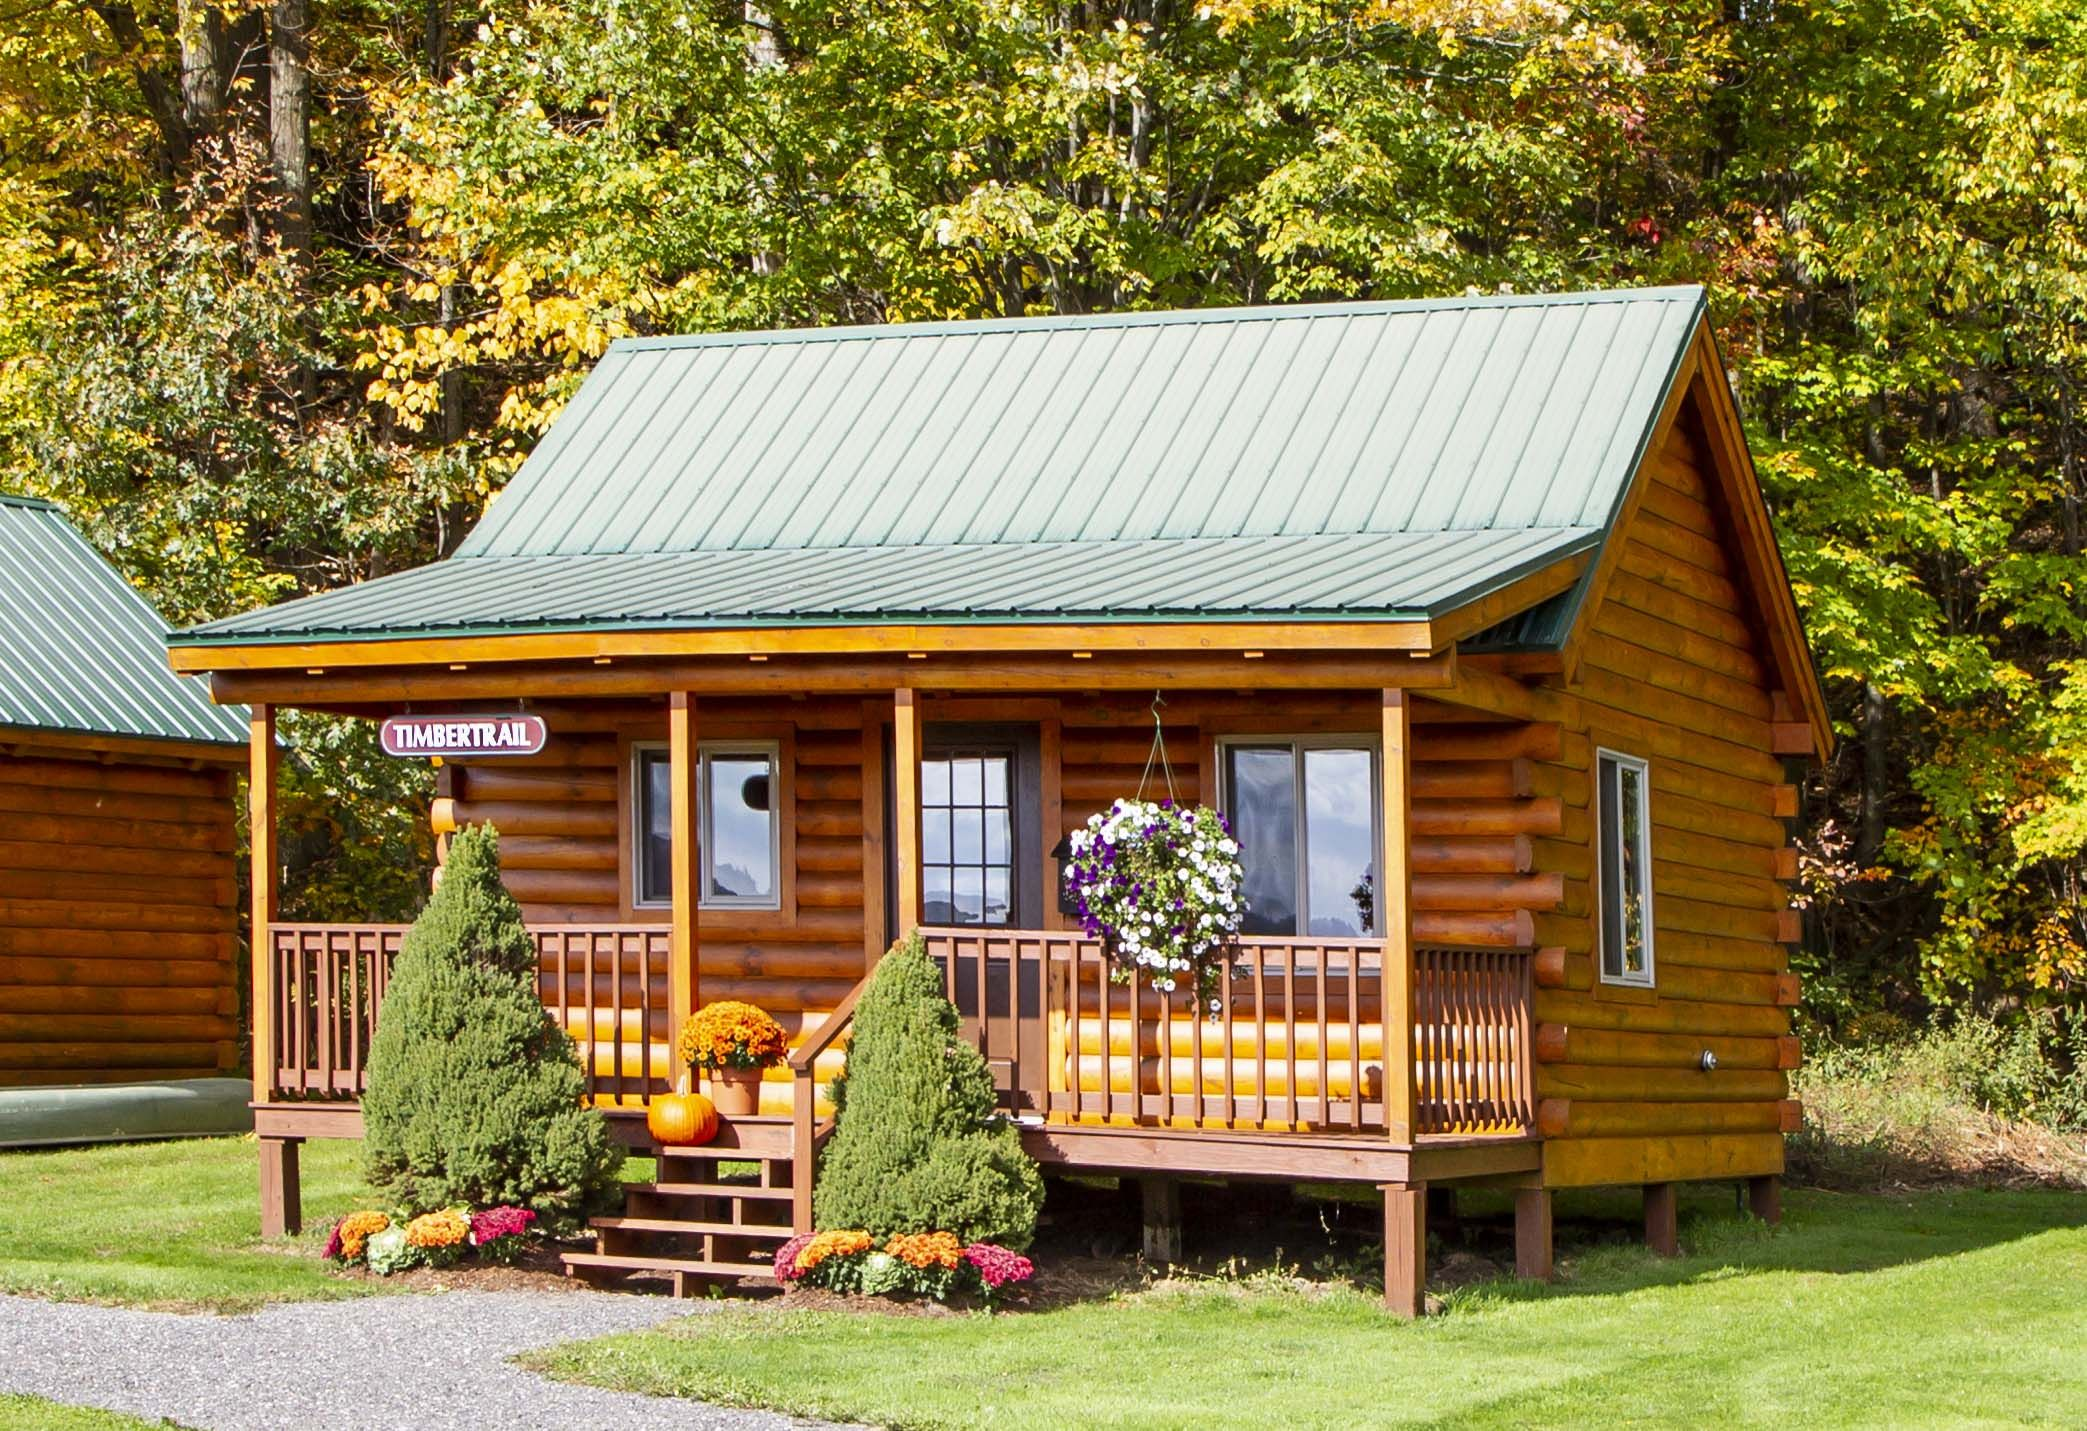 Coventry Log Homes Our Home Designs Cabin Series The Timbertrail